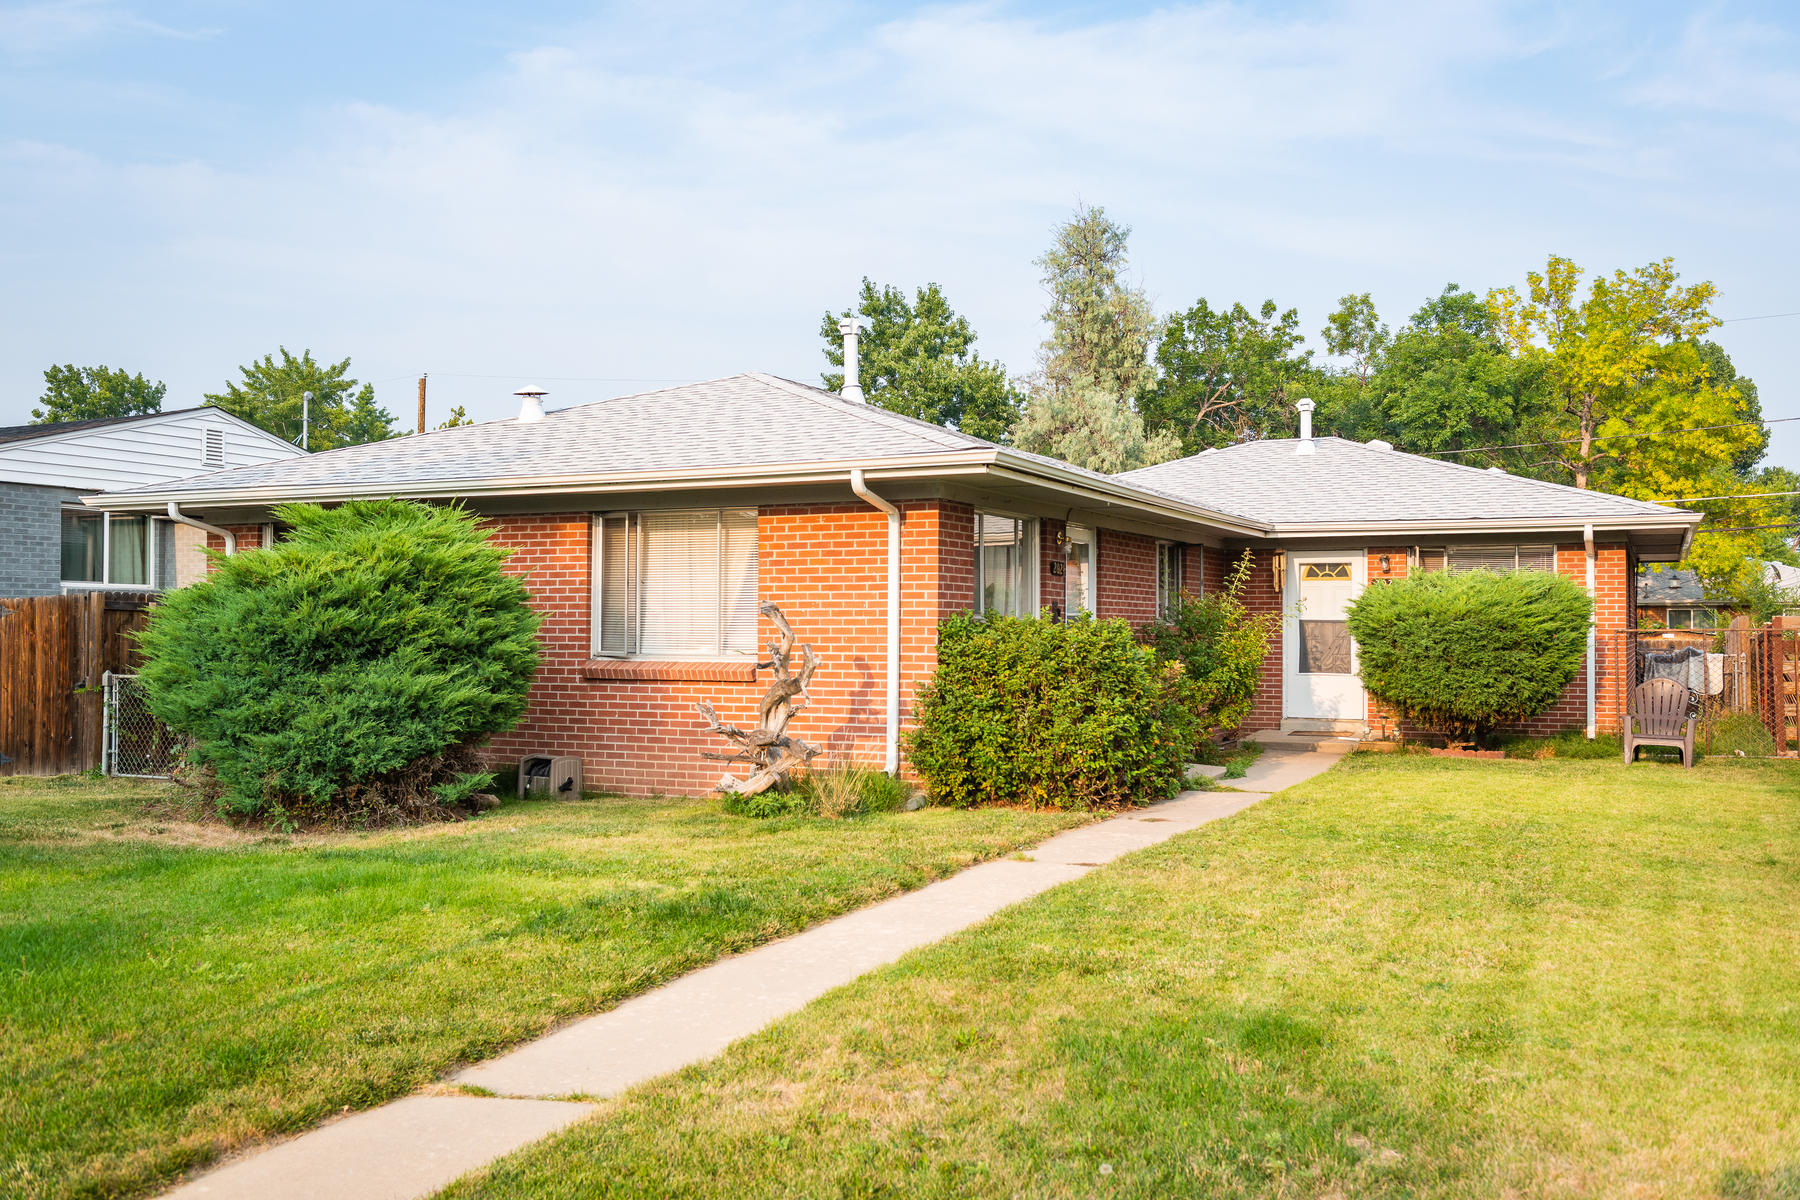 Duplex for Active at Potential To Increase Value In A Hot Area! 2020 Kendall St Edgewater, Colorado 80214 United States